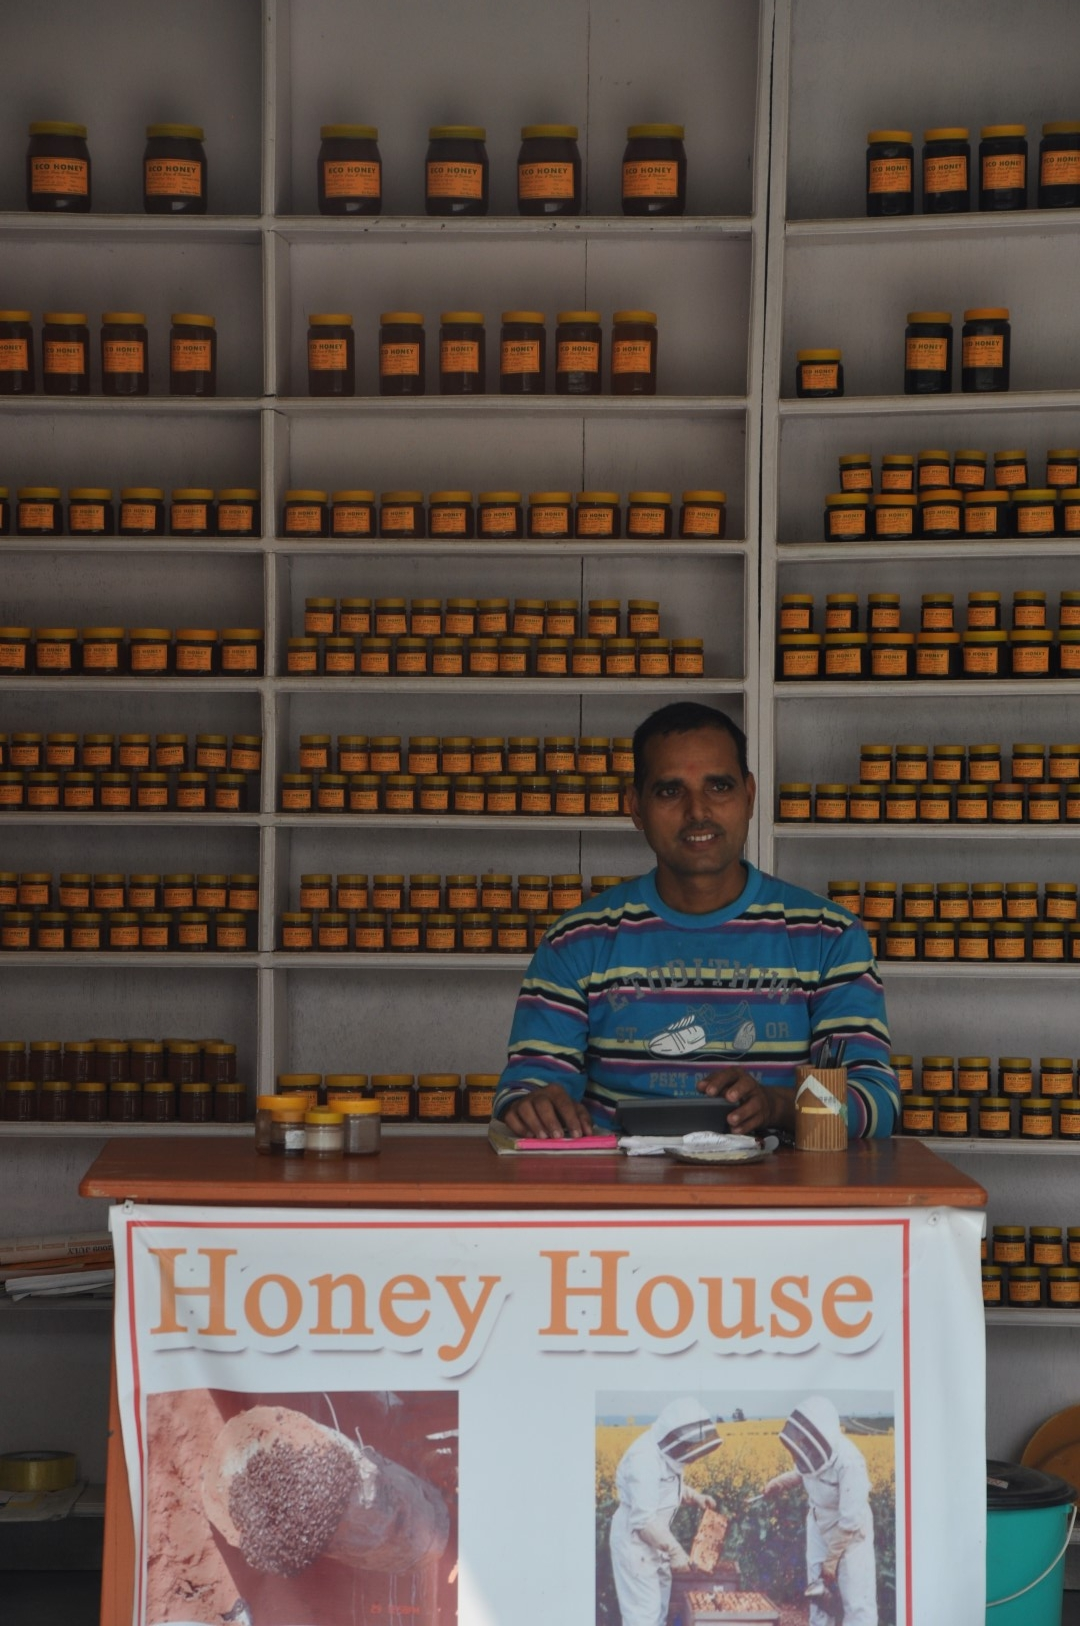 The honey man